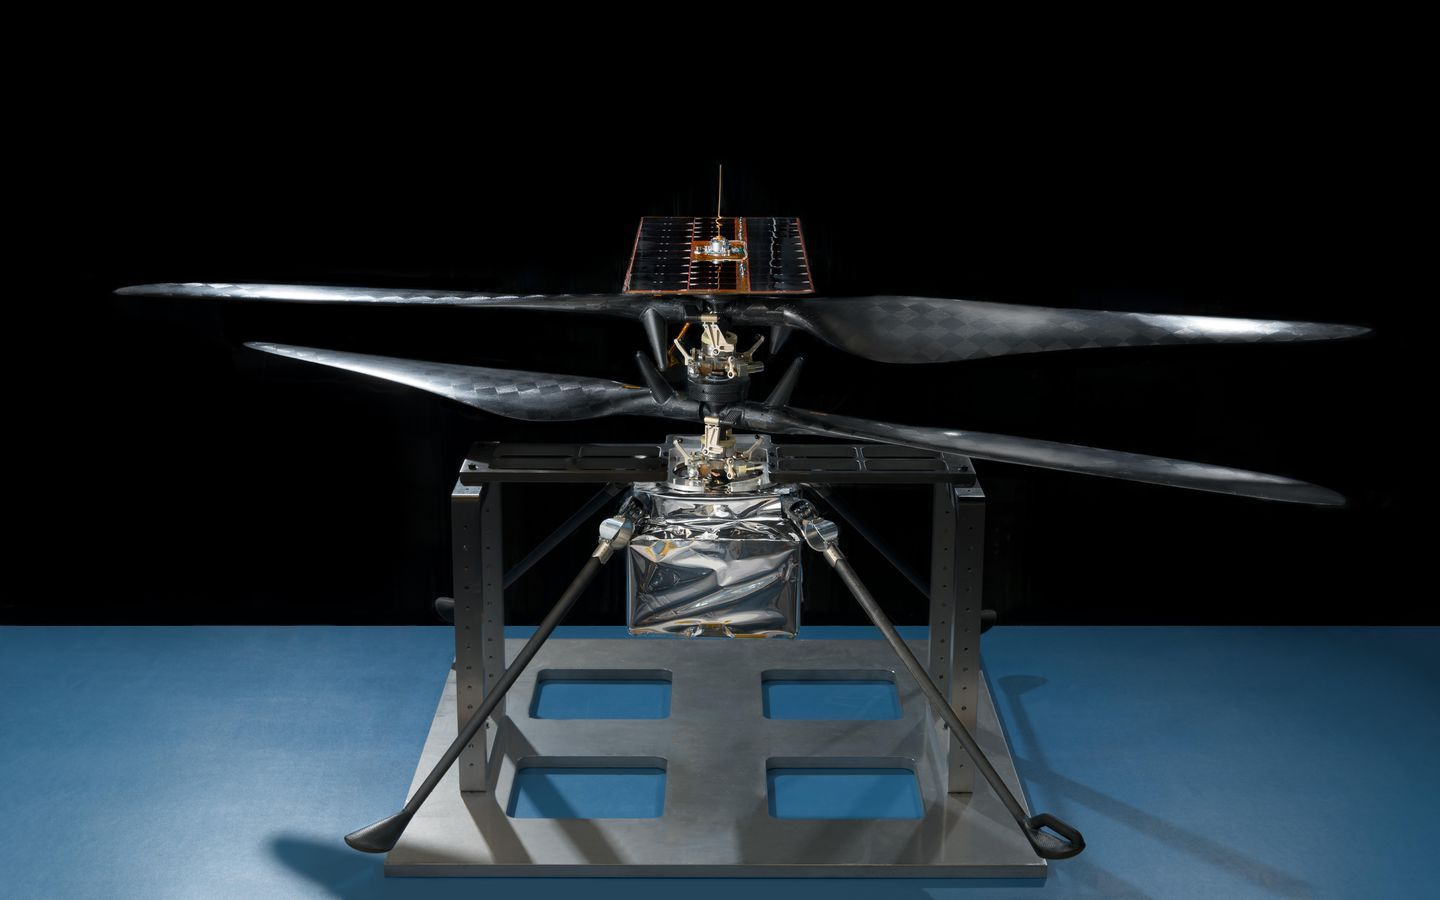 NASA's Mars Helicopter